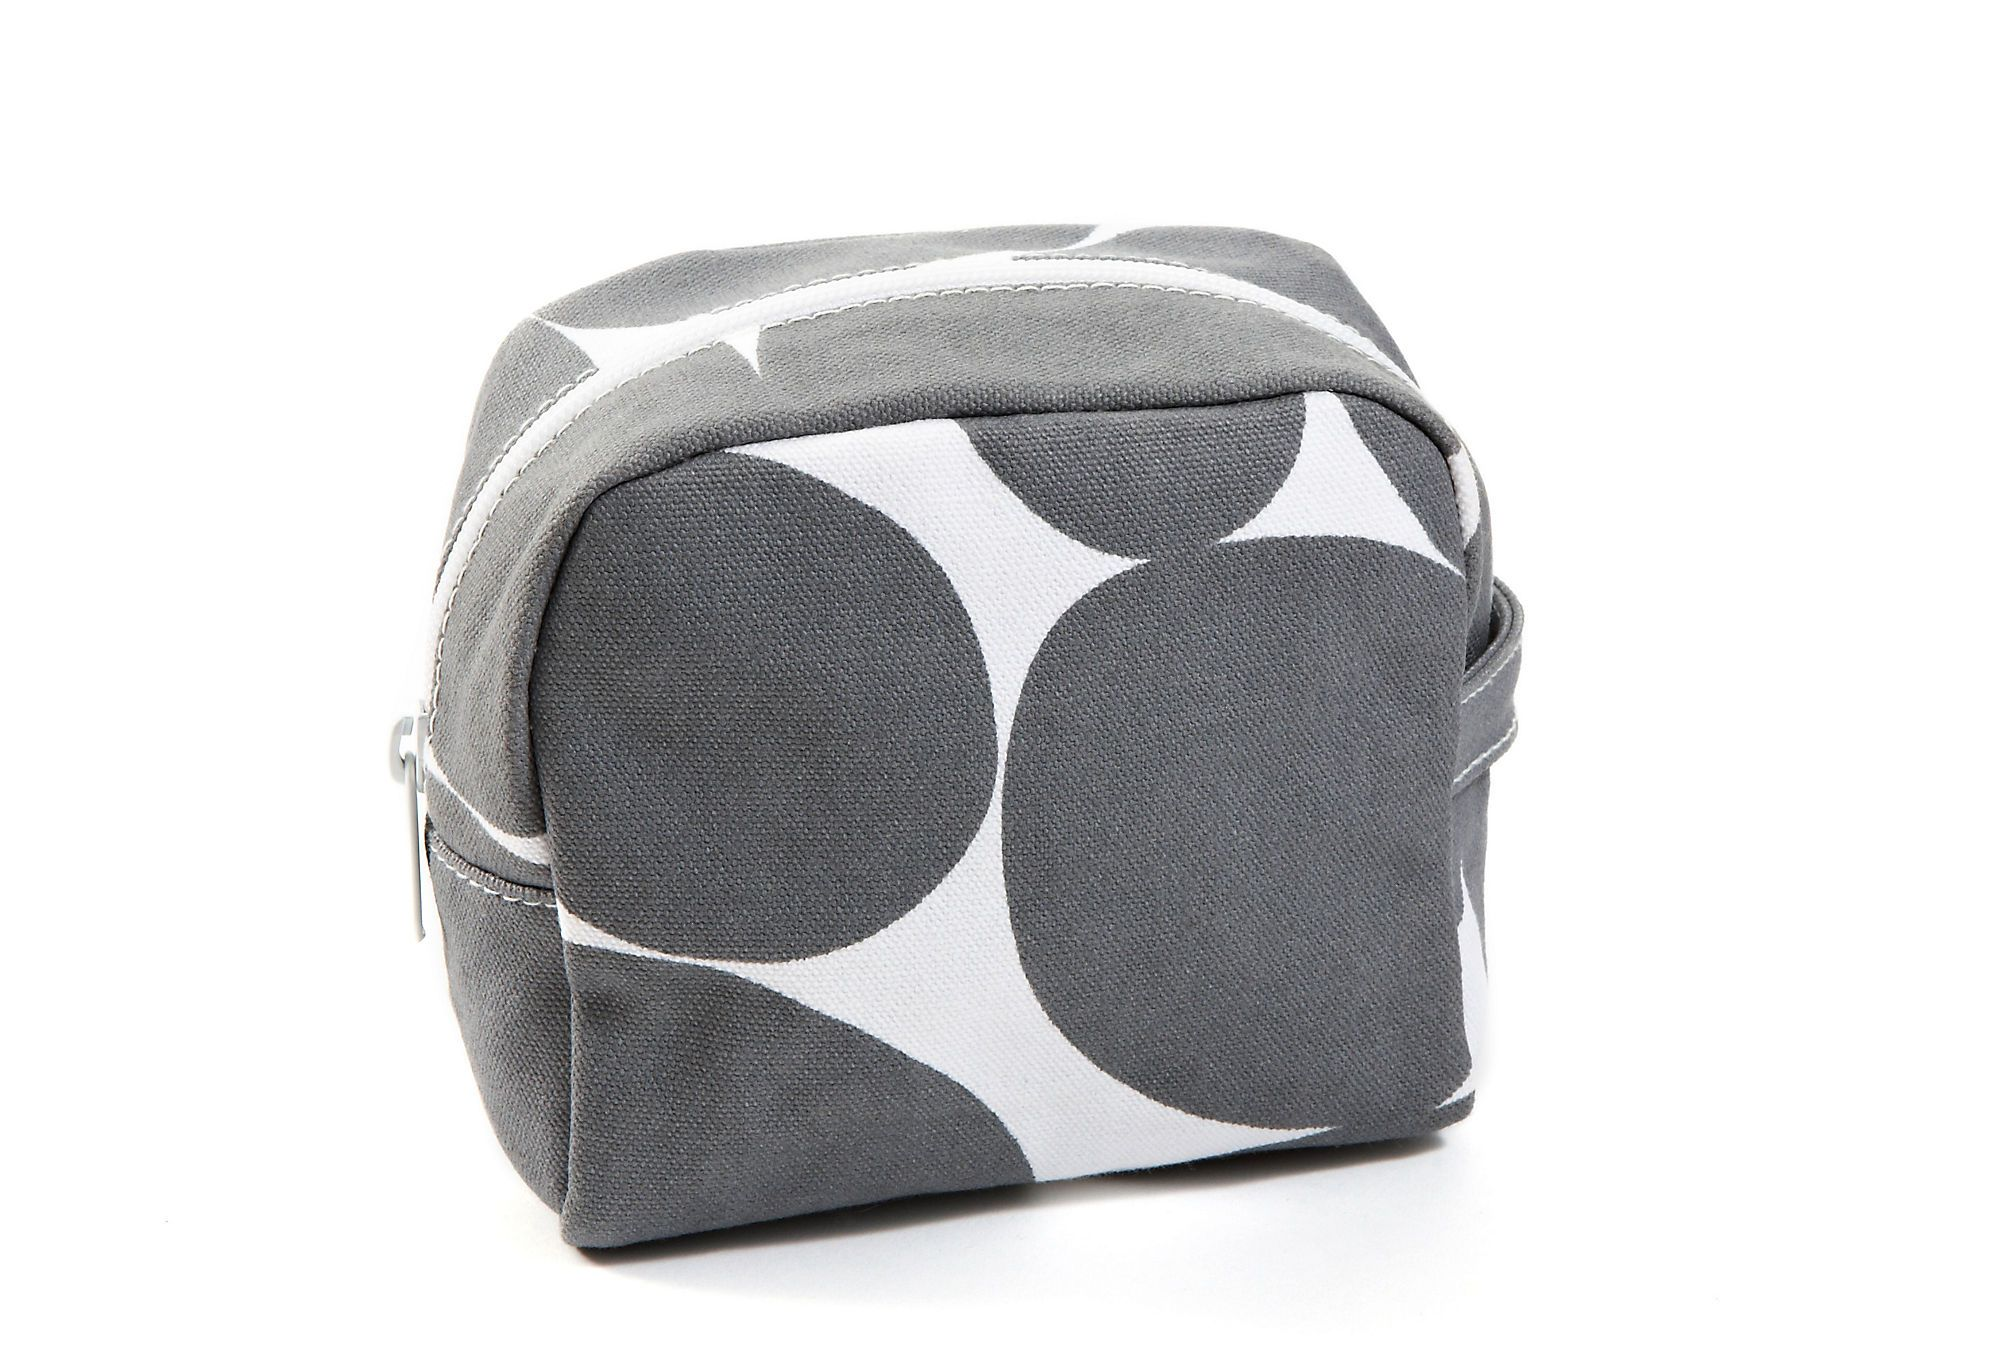 Sm. Cosmetic Bag, Gray Dot / SEE DESIGN #bag #makeup